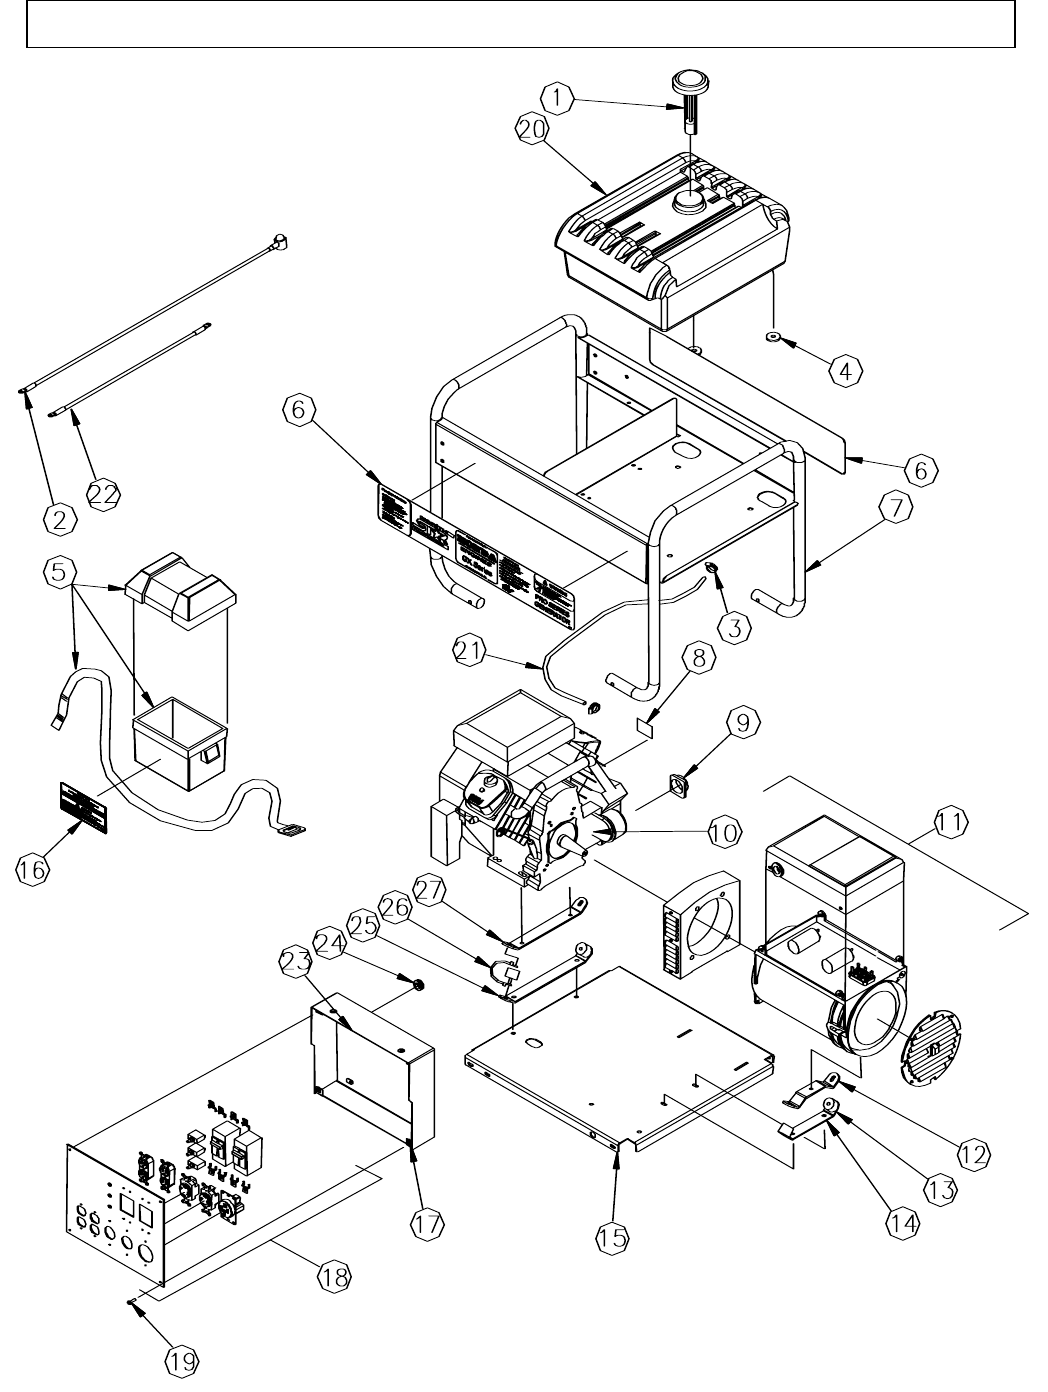 Page 38 of North Star Portable Generator M165923V.1 User